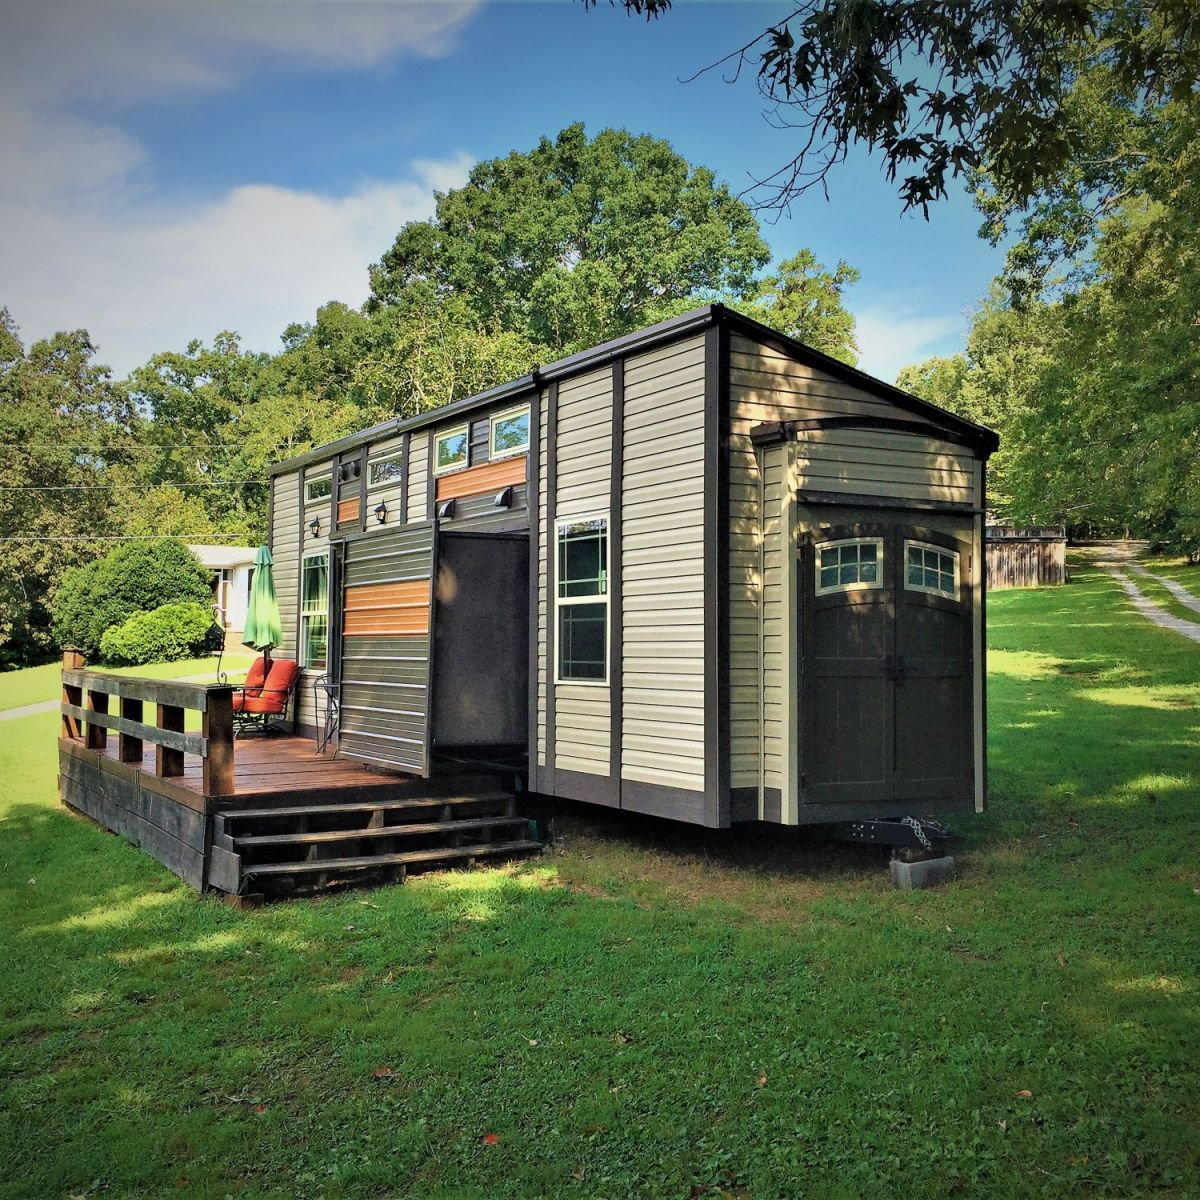 Turn Key Luxury Tiny House on Wheels - Tiny House for Sale in Knoxville,  Tennessee - Tiny House Listings